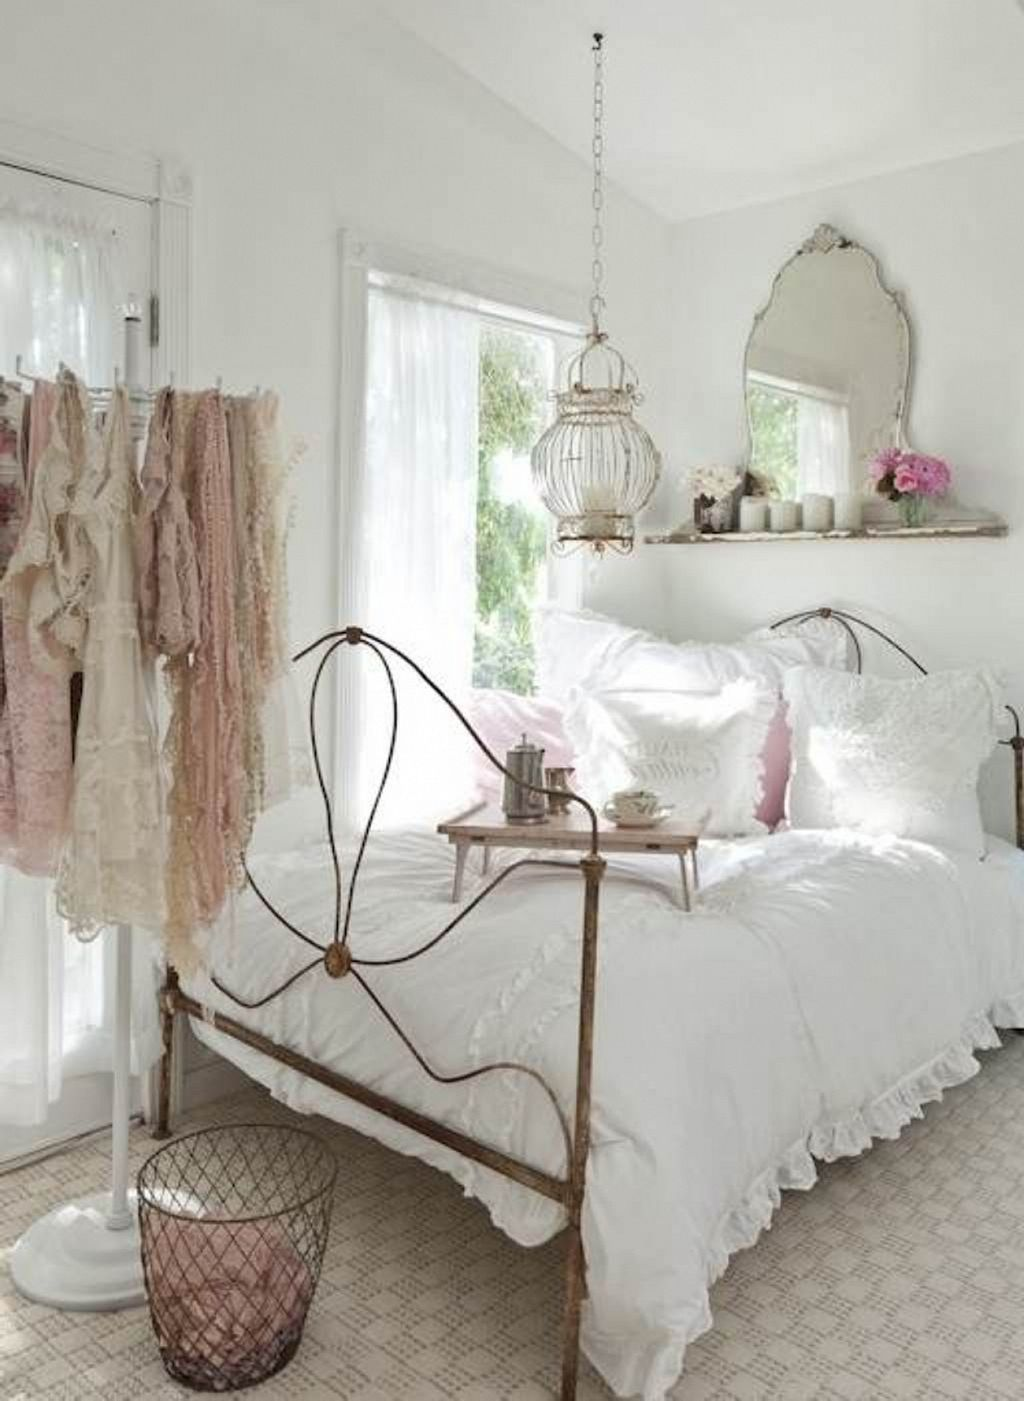 Dormitorios Shabby Chic 80 Shabby Chic Home Decor Ideas 46 Shabby Chic Dormitorio